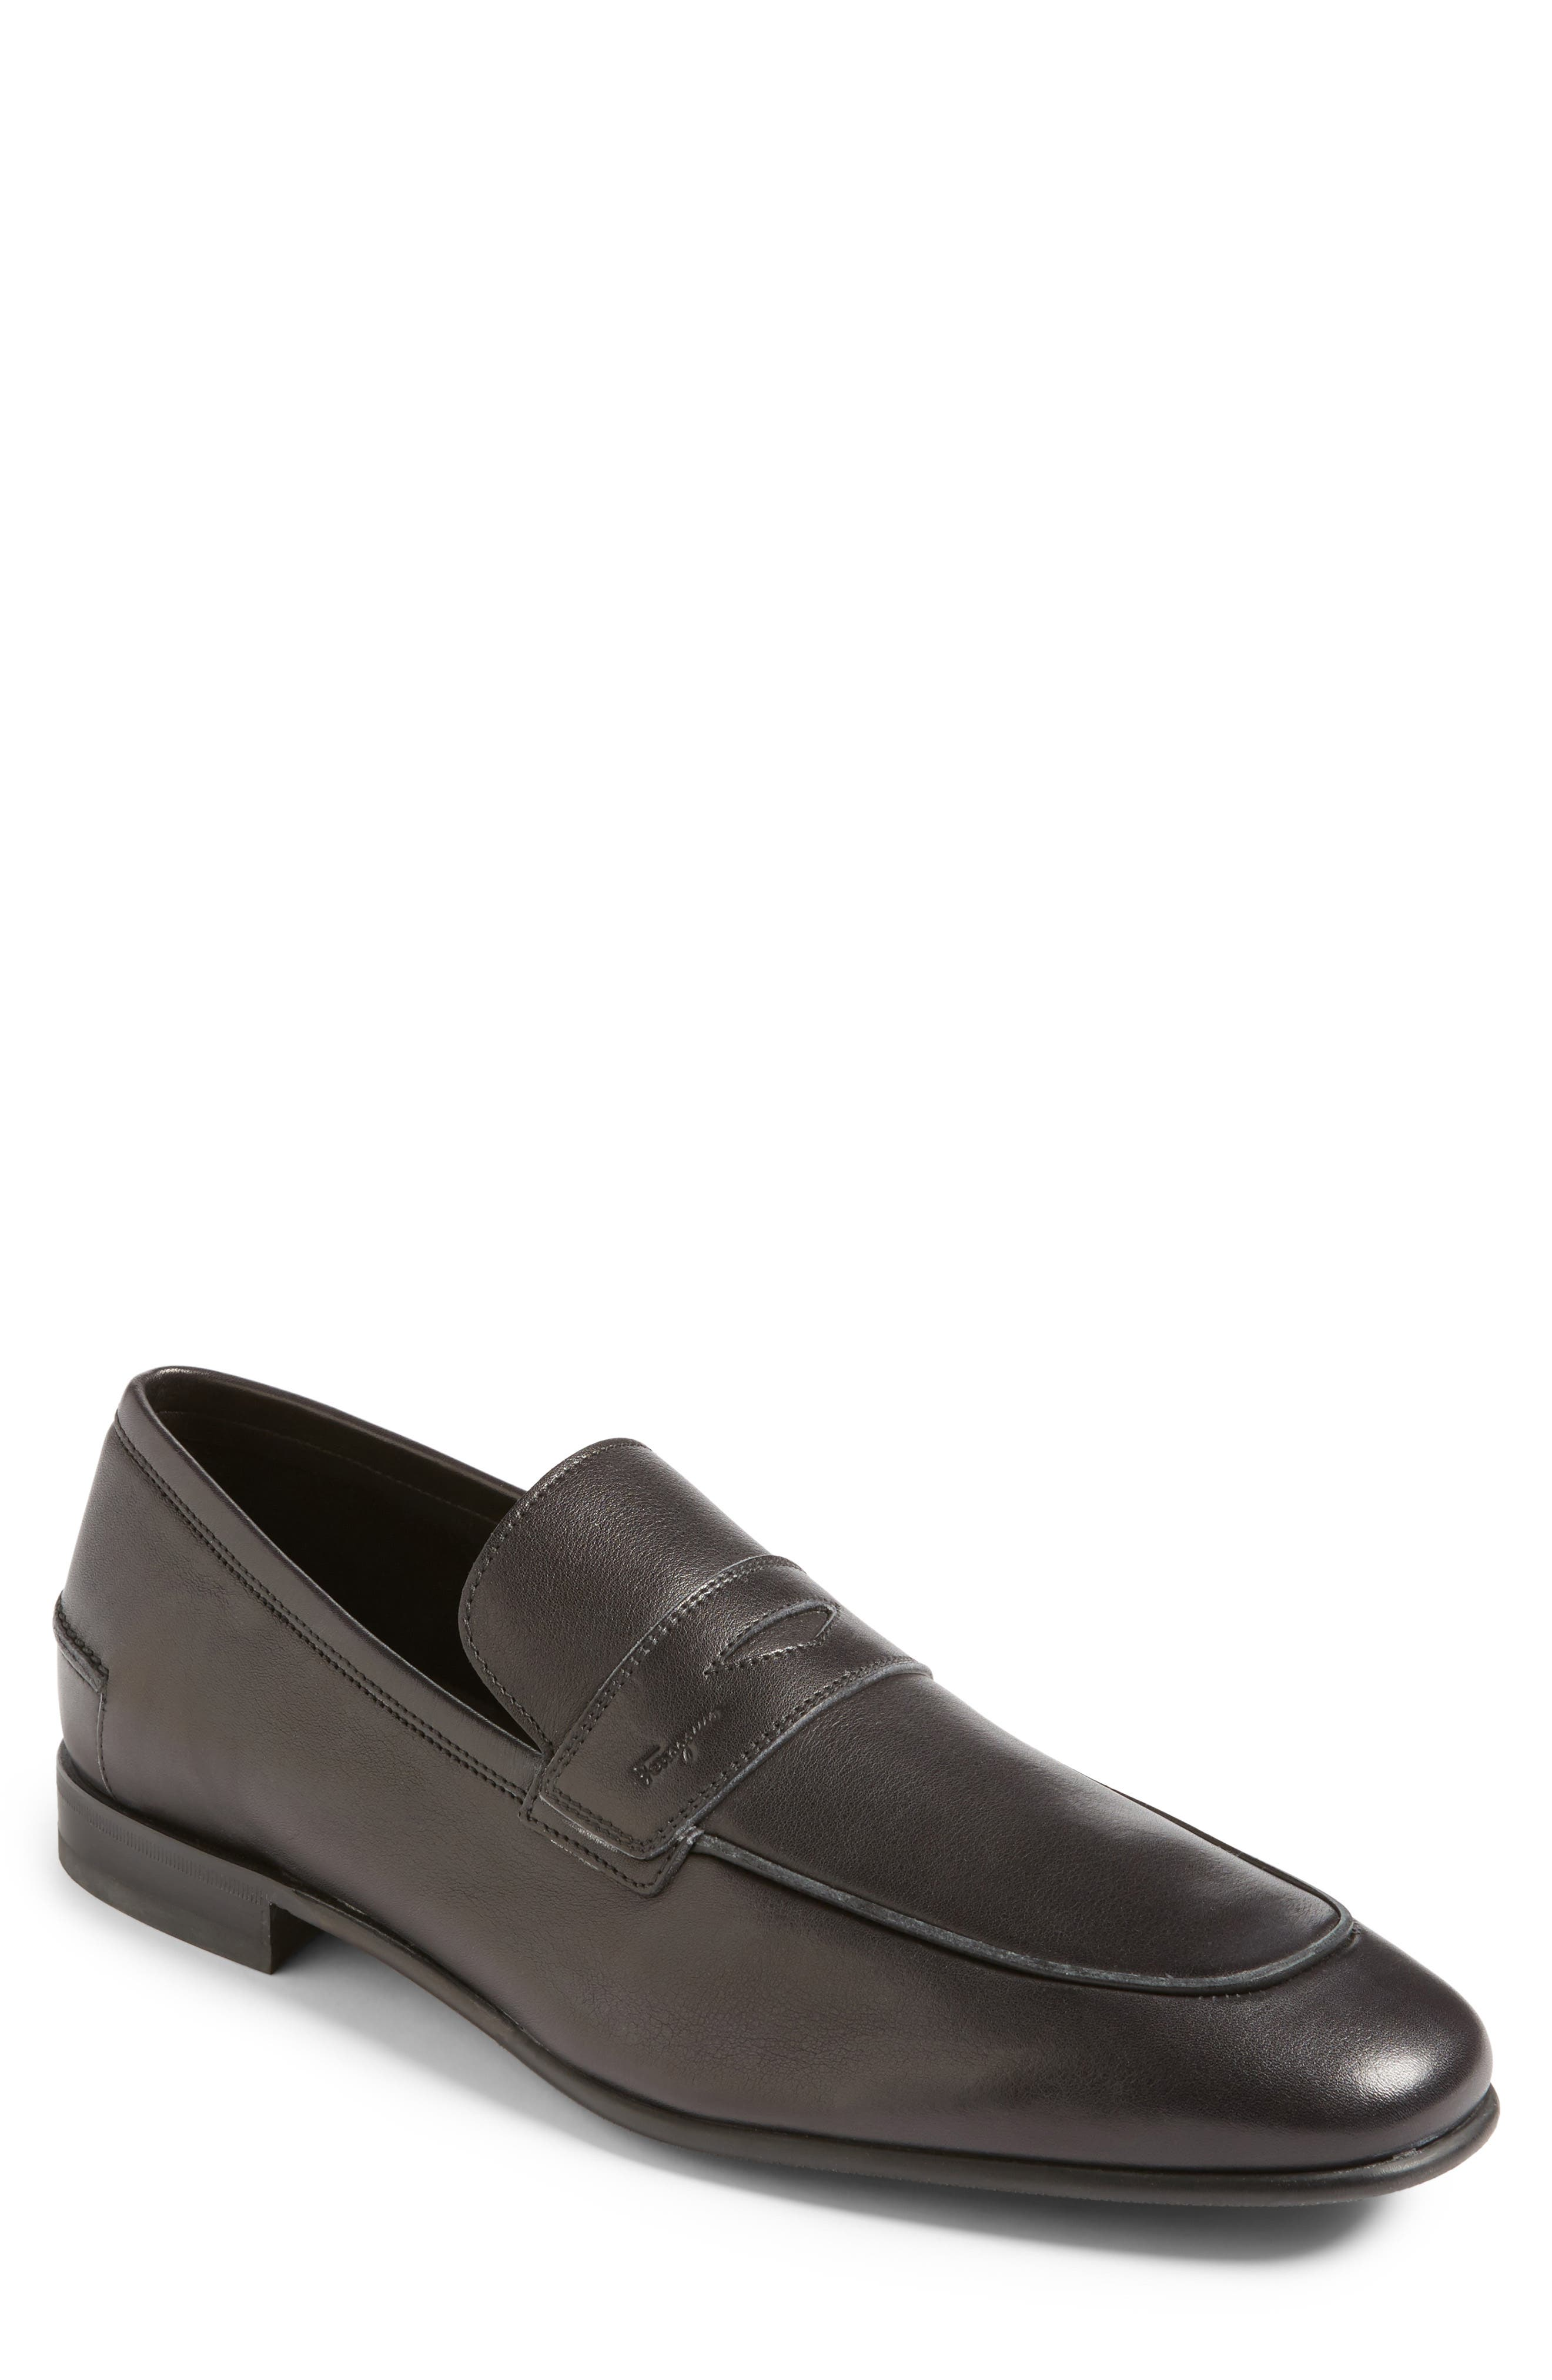 Duchamp Penny Loafer,                         Main,                         color, Nero Leather